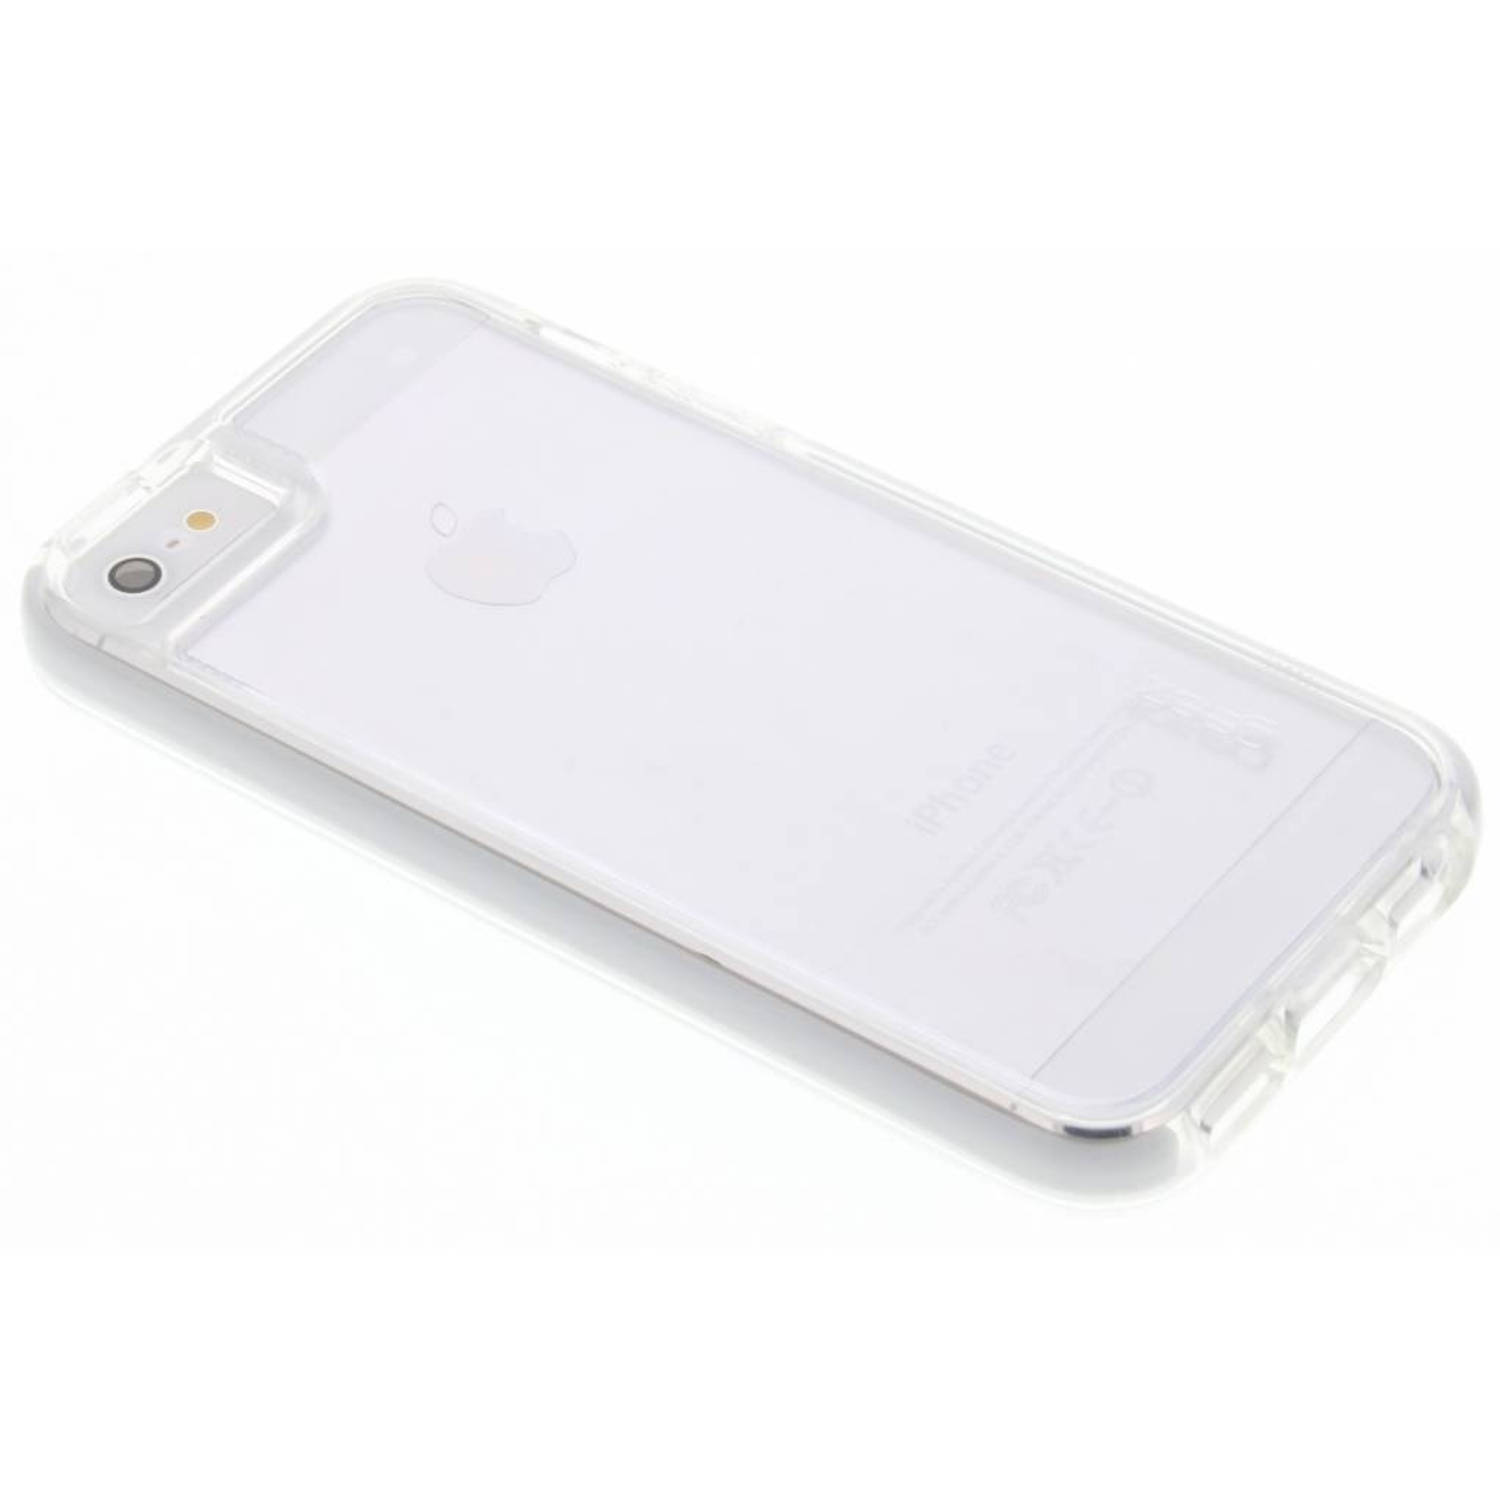 D3O Piccadilly Case voor de iPhone 5 / 5s / SE - Zilver